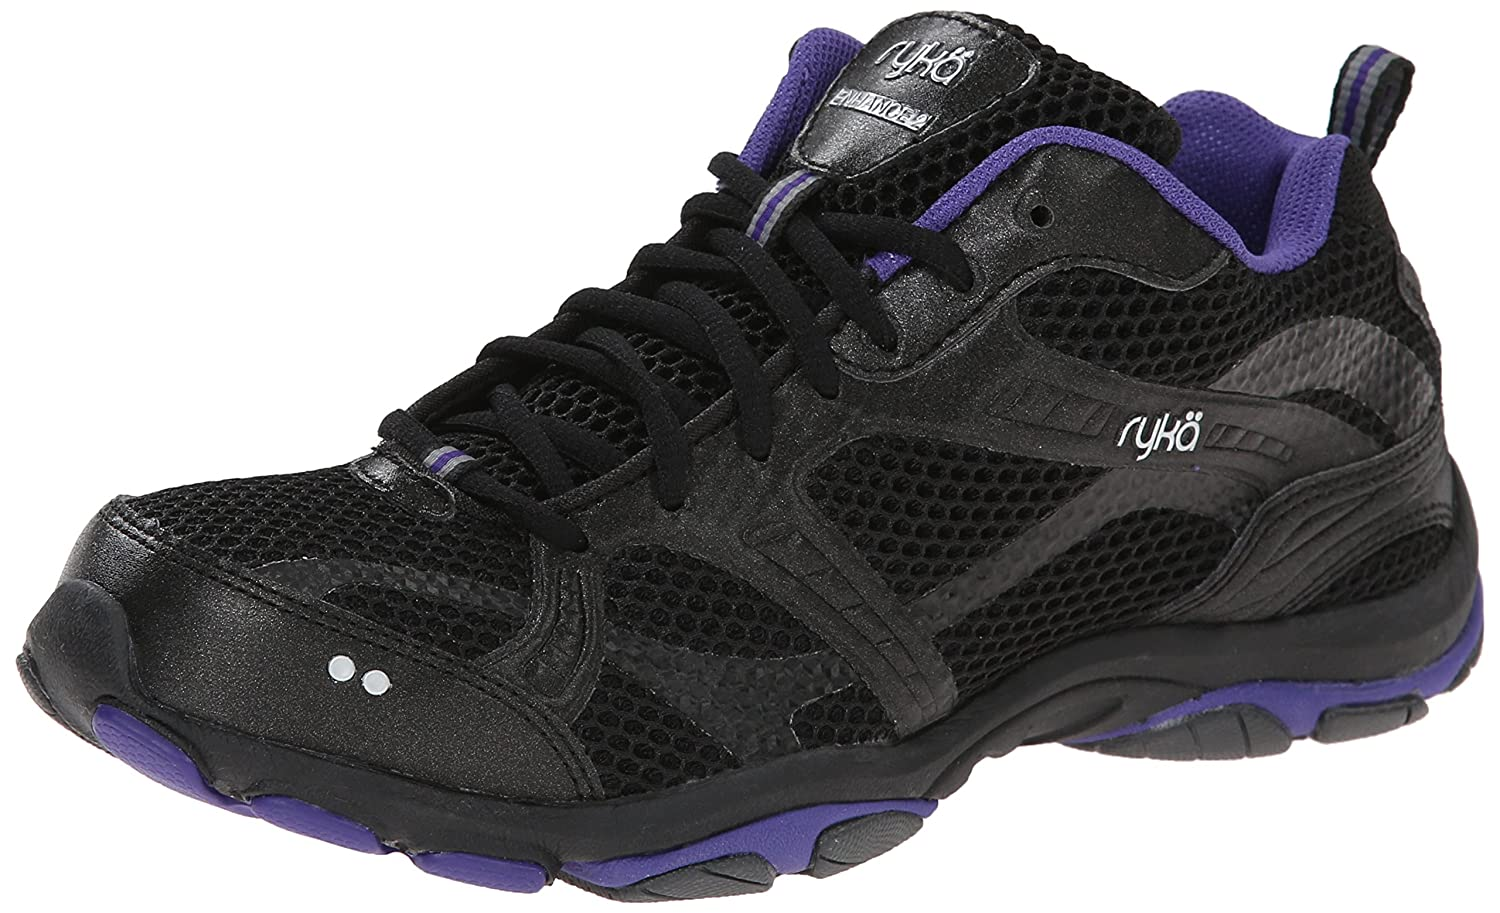 Ryka Women's Enhance 2 Cross-Training Shoe B00JB66XXC 5.5 B(M) US|Black/Purple Rain/Iron Grey/Chrome Silver